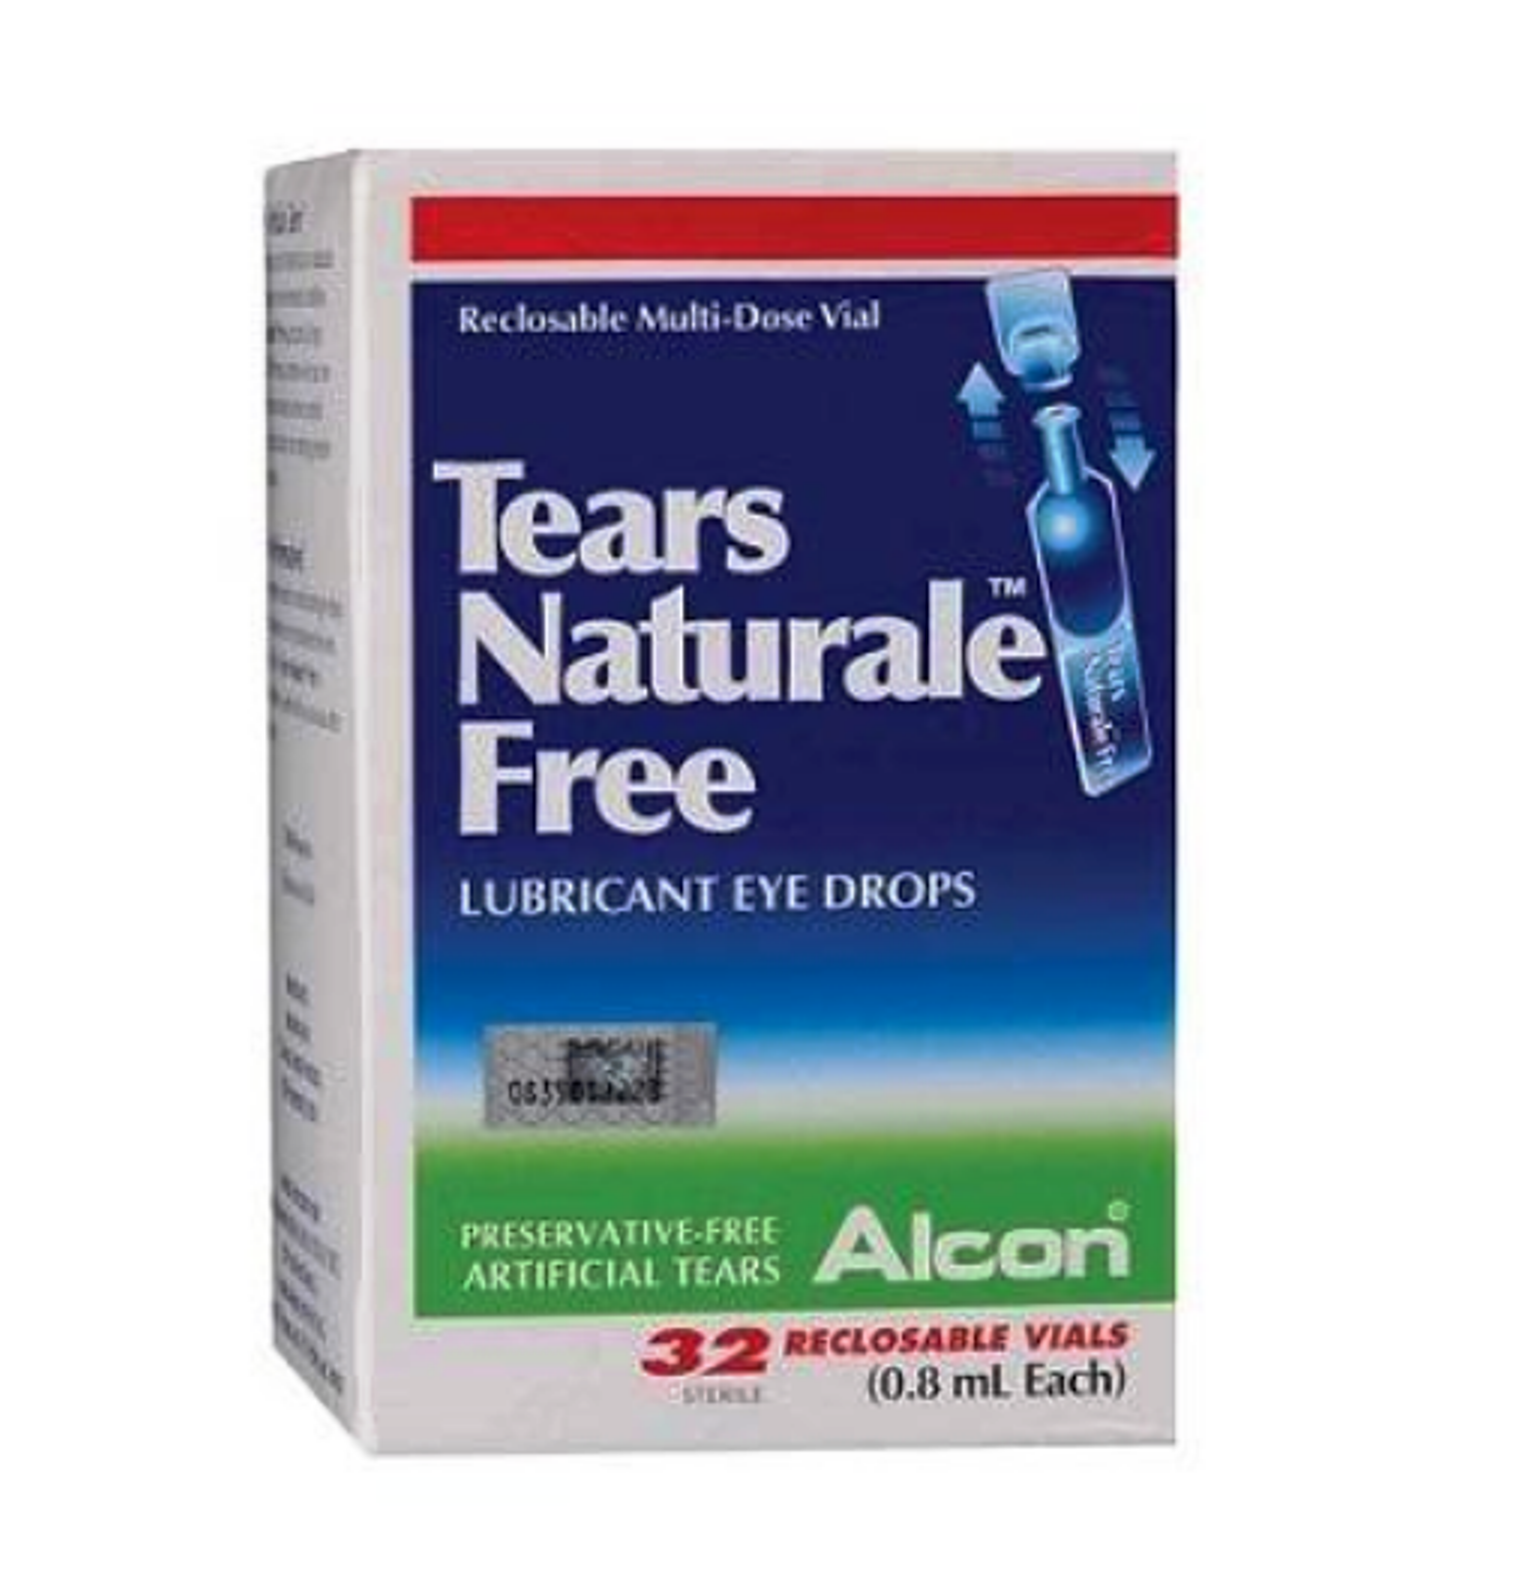 10 X Alcon Tears Naturale Free Lubricant Eye Drops (32's) Free Shipping